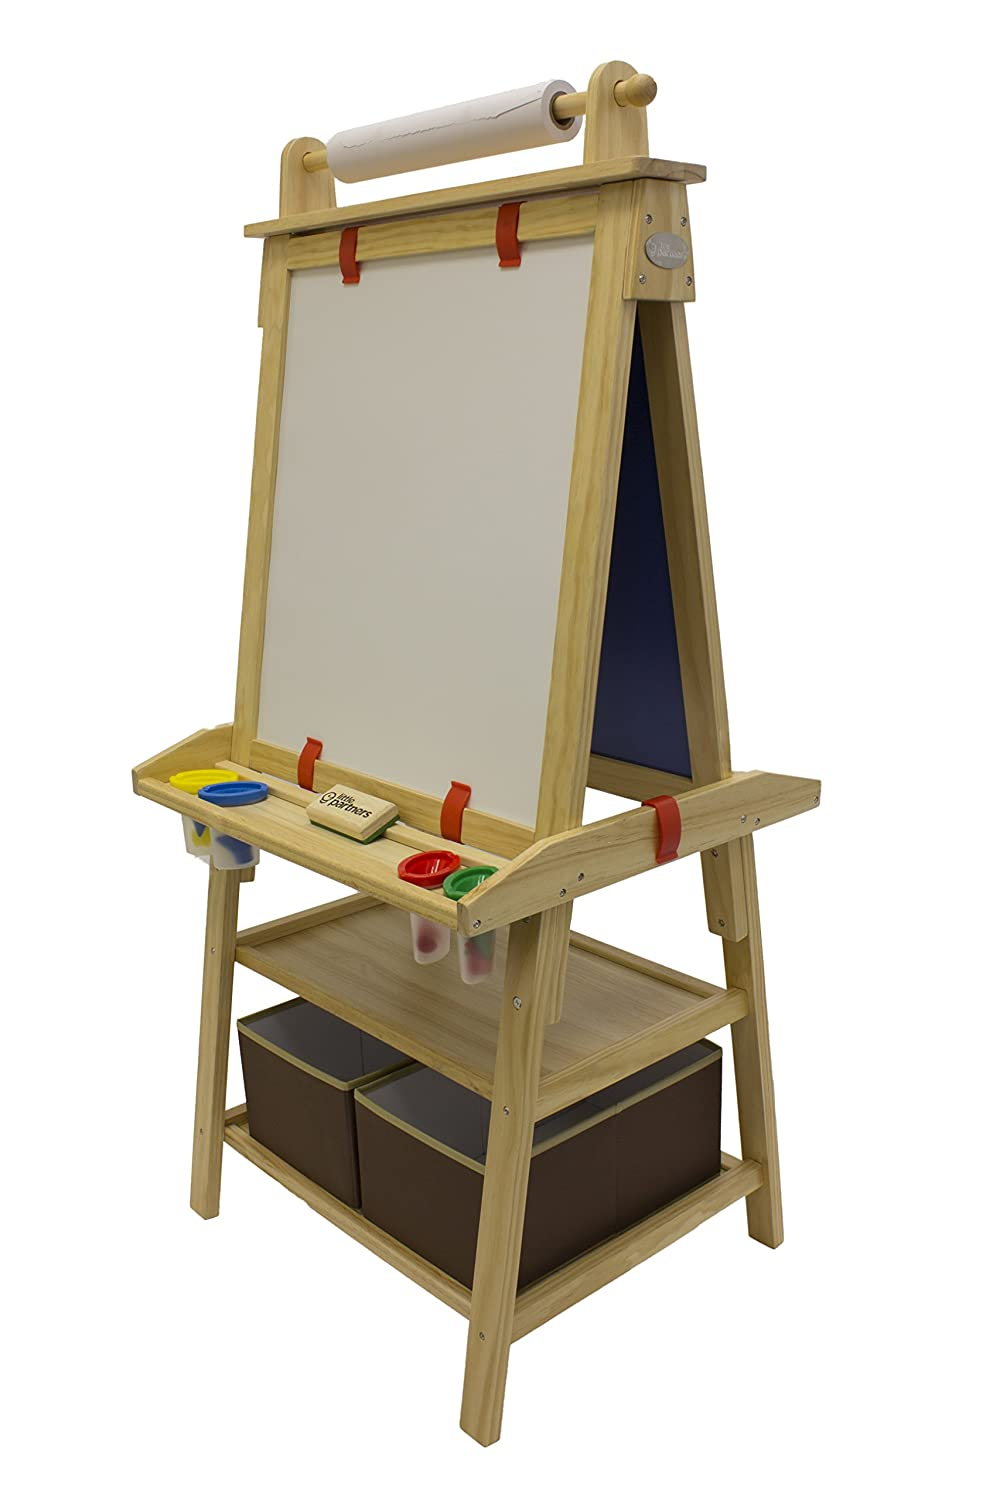 Top 9 Best Easel For Toddlers & Kids (2020 Reviews) 4